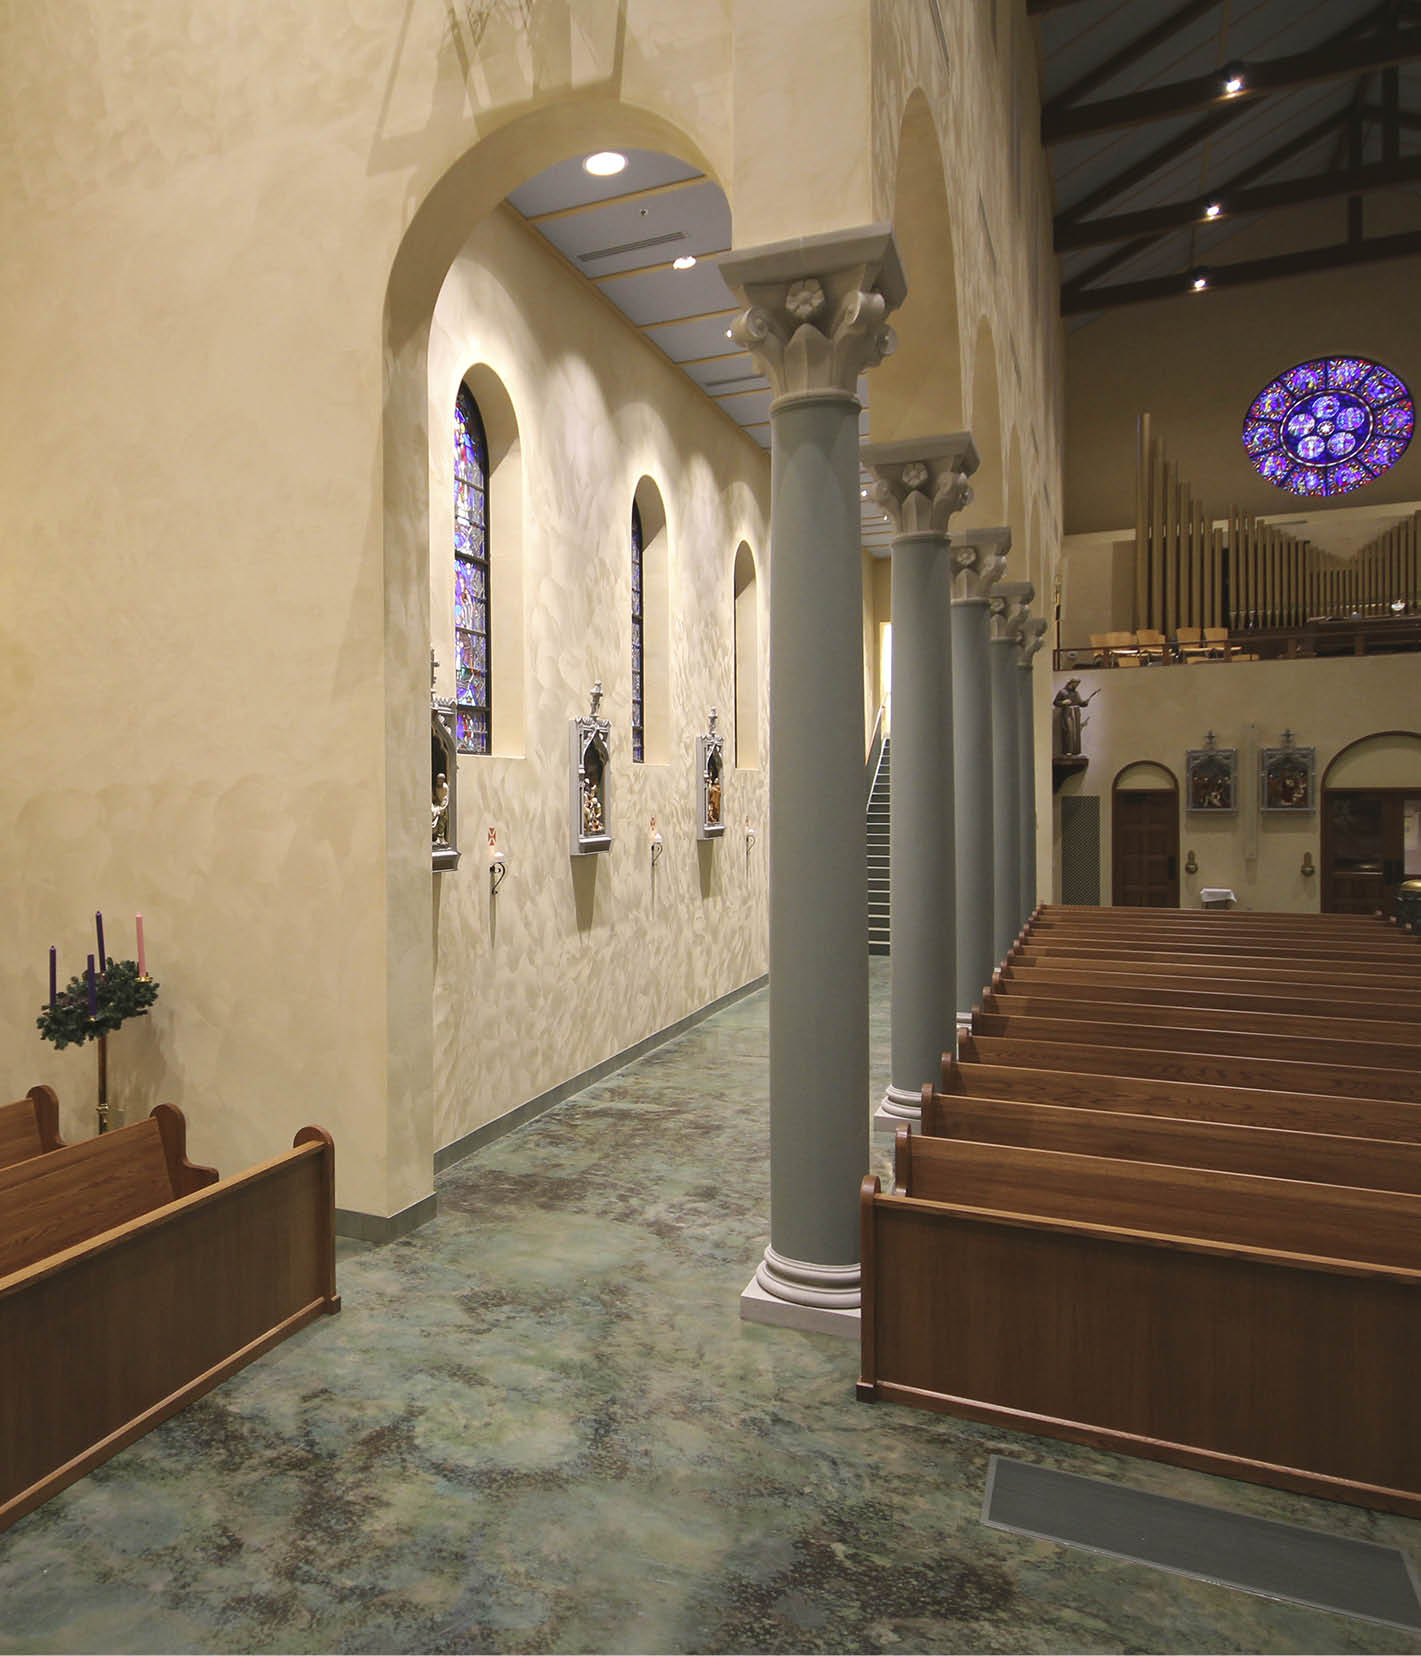 CarolinaCommanding attention on a hilltop in Greenville, South Carolina, the new Our Lady of the Rosary church is as impressive inside as it is outside with soaring arches, reclaimed glass windows and a beautiful marbleized stained concrete floor.